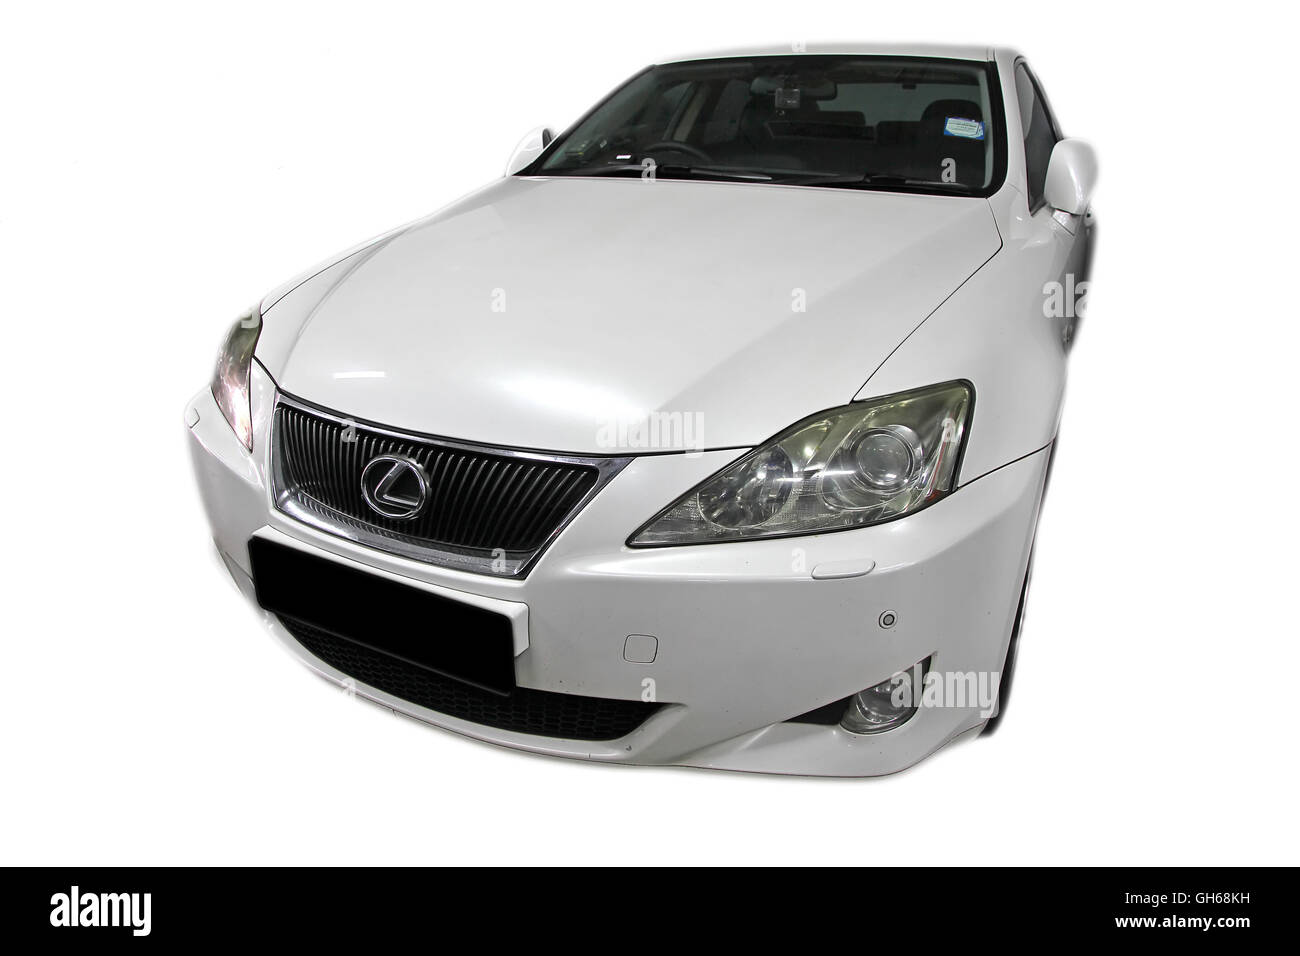 Lexus IS IS250 in White - Stock Image